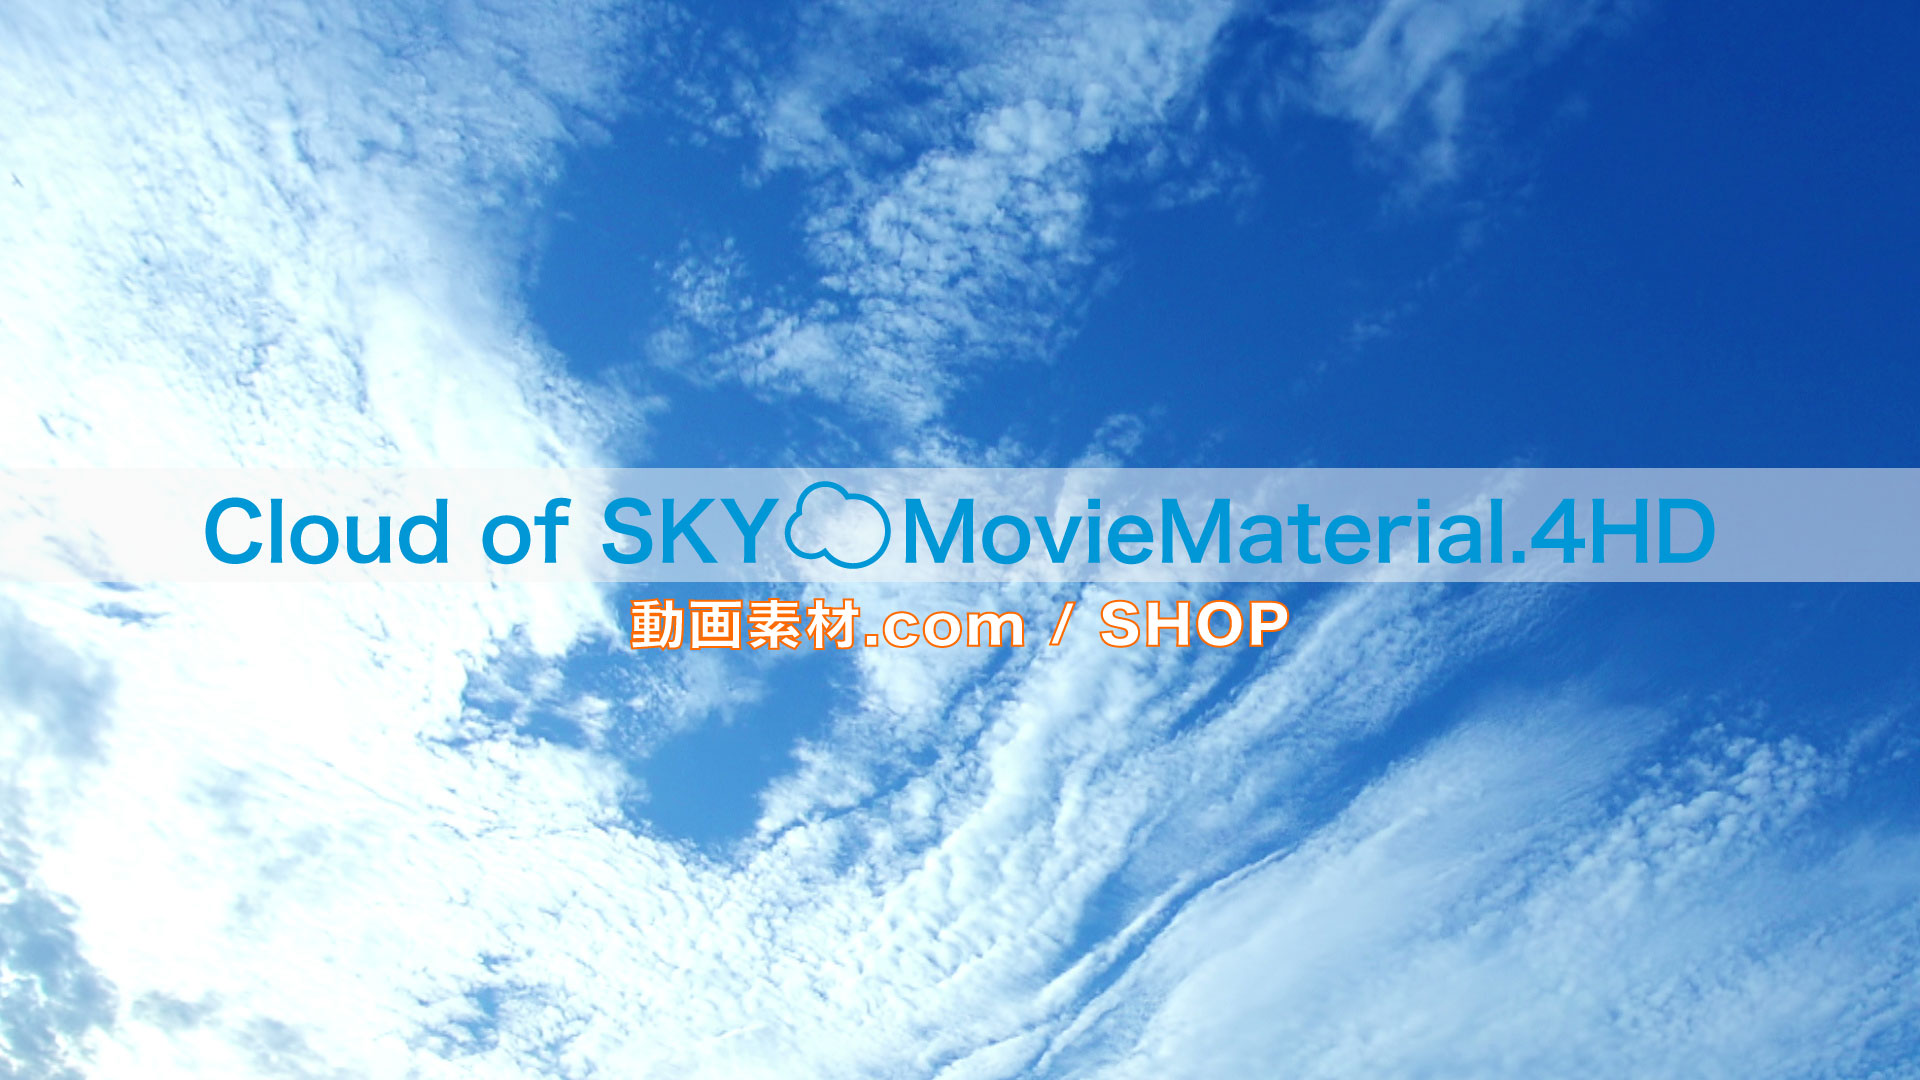 【Cloud of SKY MovieMaterial.4HD】ロイヤリティフリー フルハイビジョン空と雲の動画素材集 Image.8